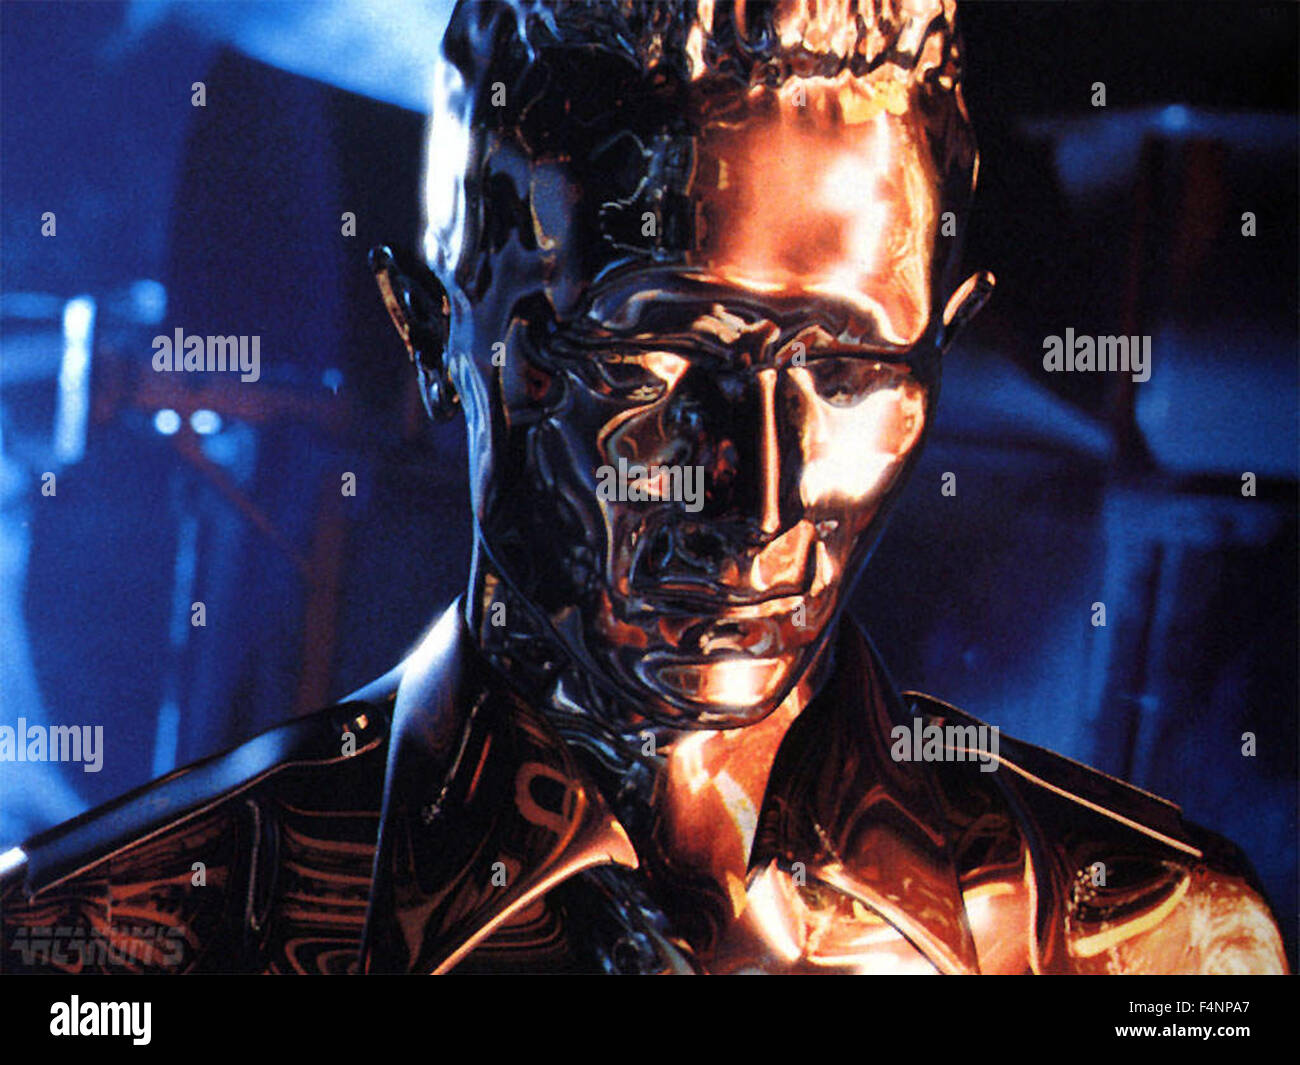 Terminator 2: Judgment Day (also referred to as simply Terminator 2 or T2) is a 1991 American science fiction action - Stock Image